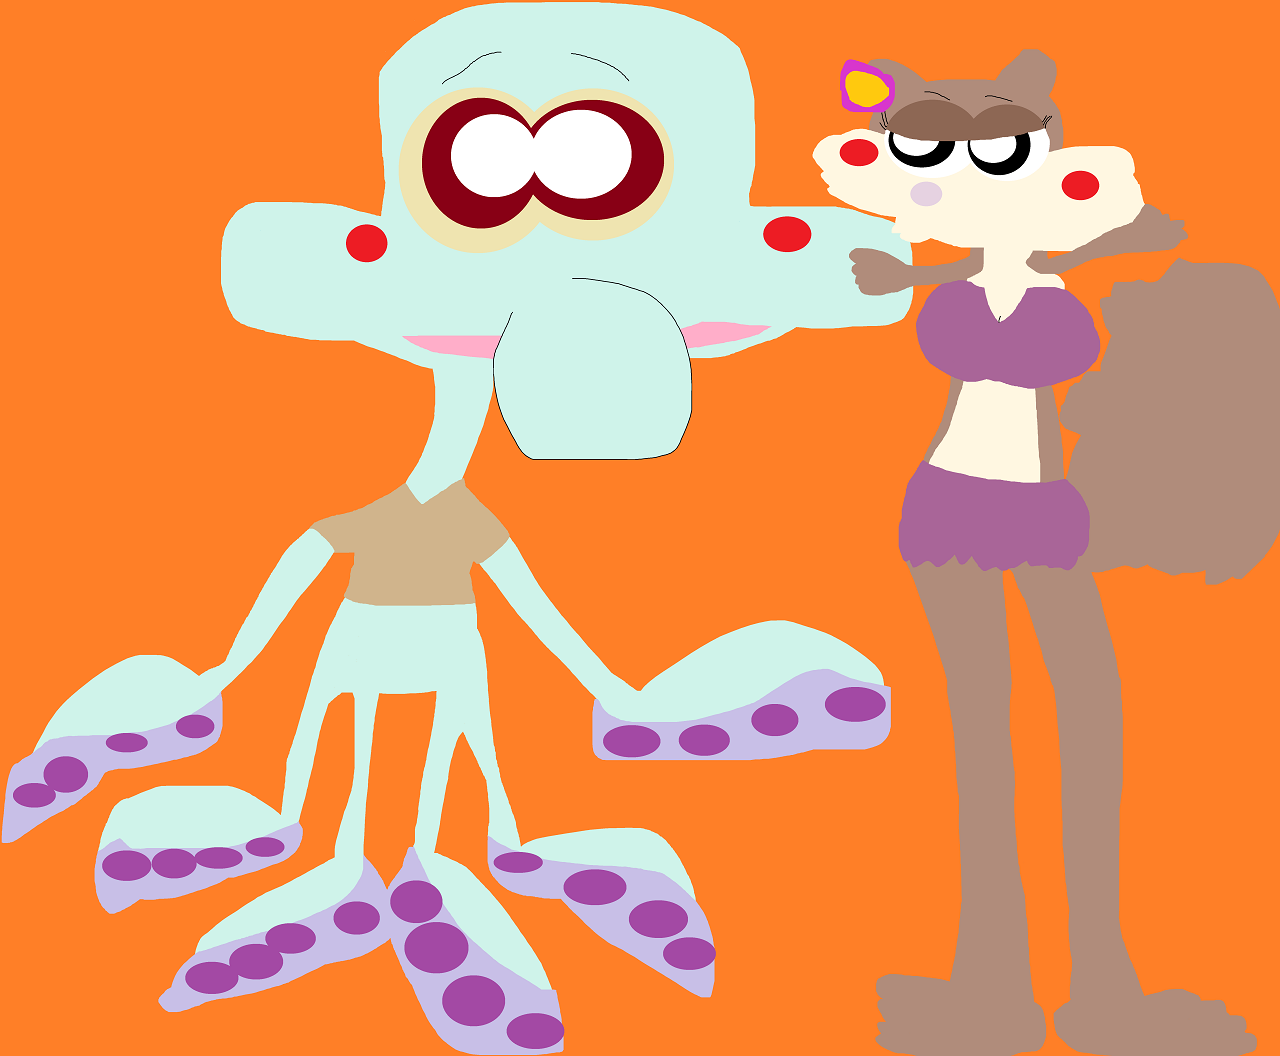 It's Squidie Sandy Added by Falconlobo